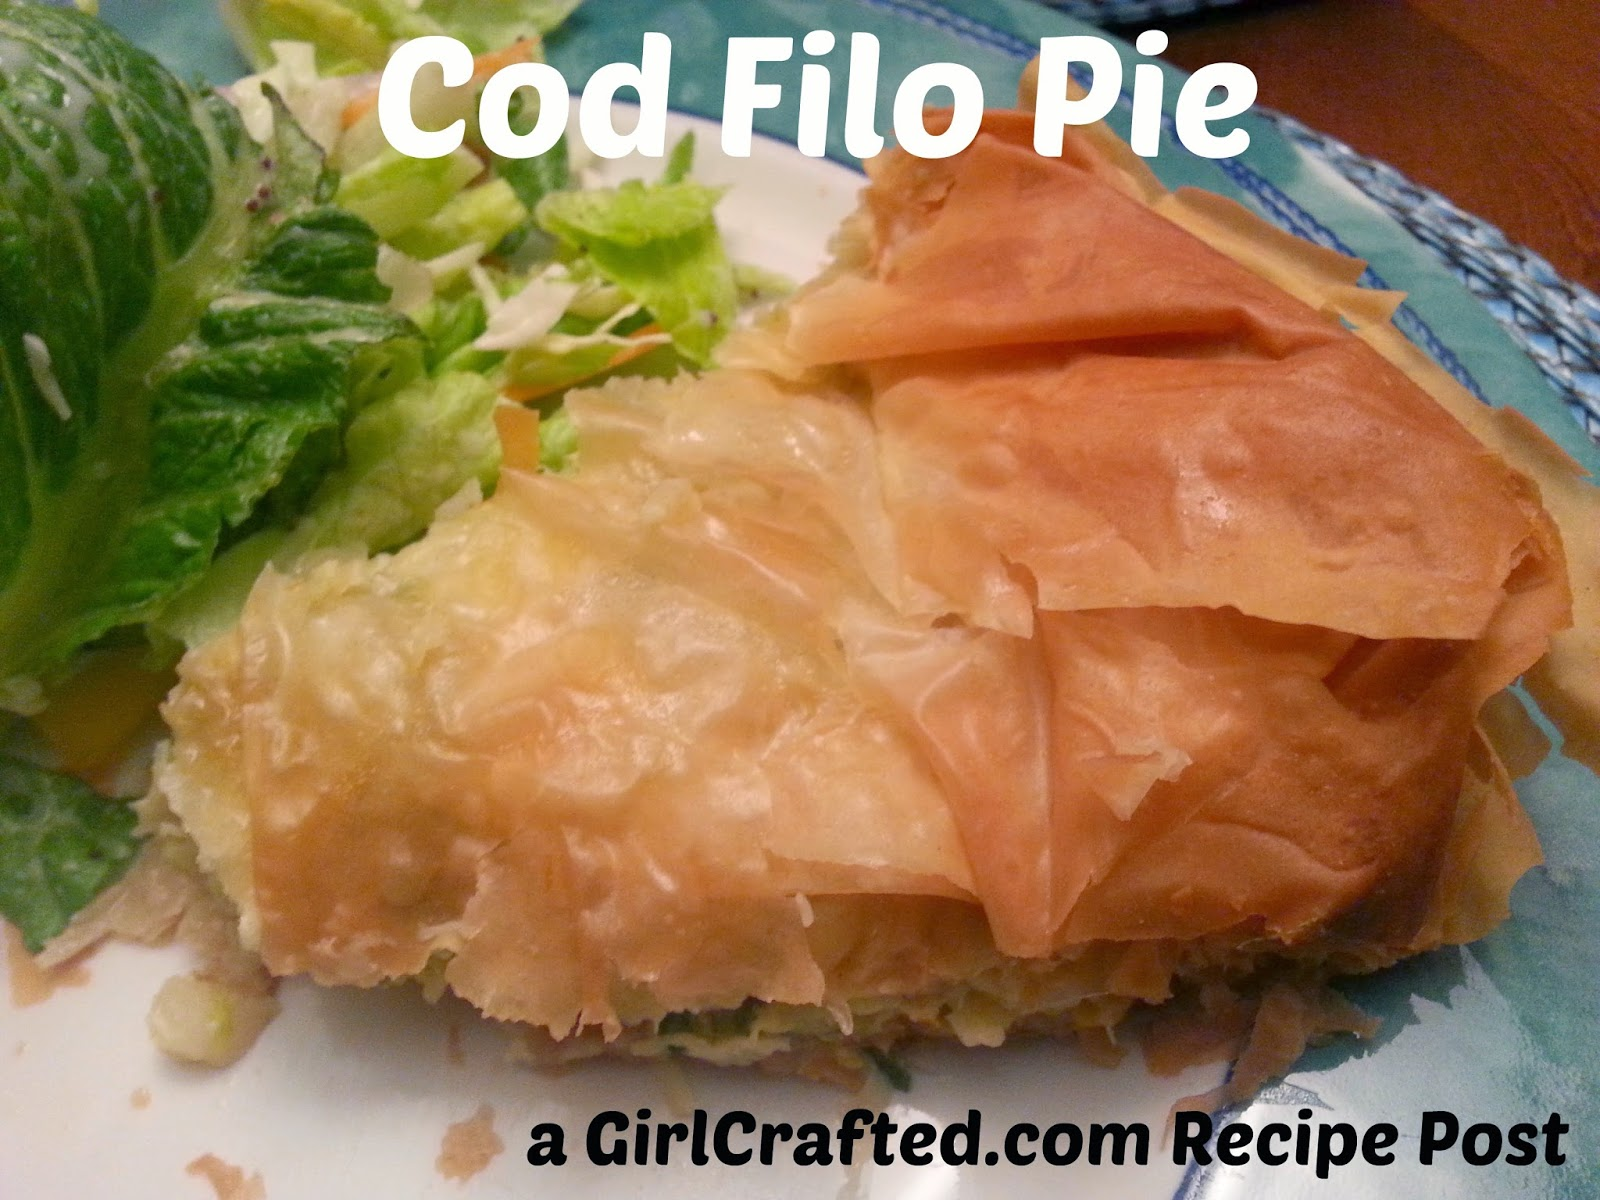 Girl crafted fish and filo pie jamie oliver recipe for Fish pie jamie oliver